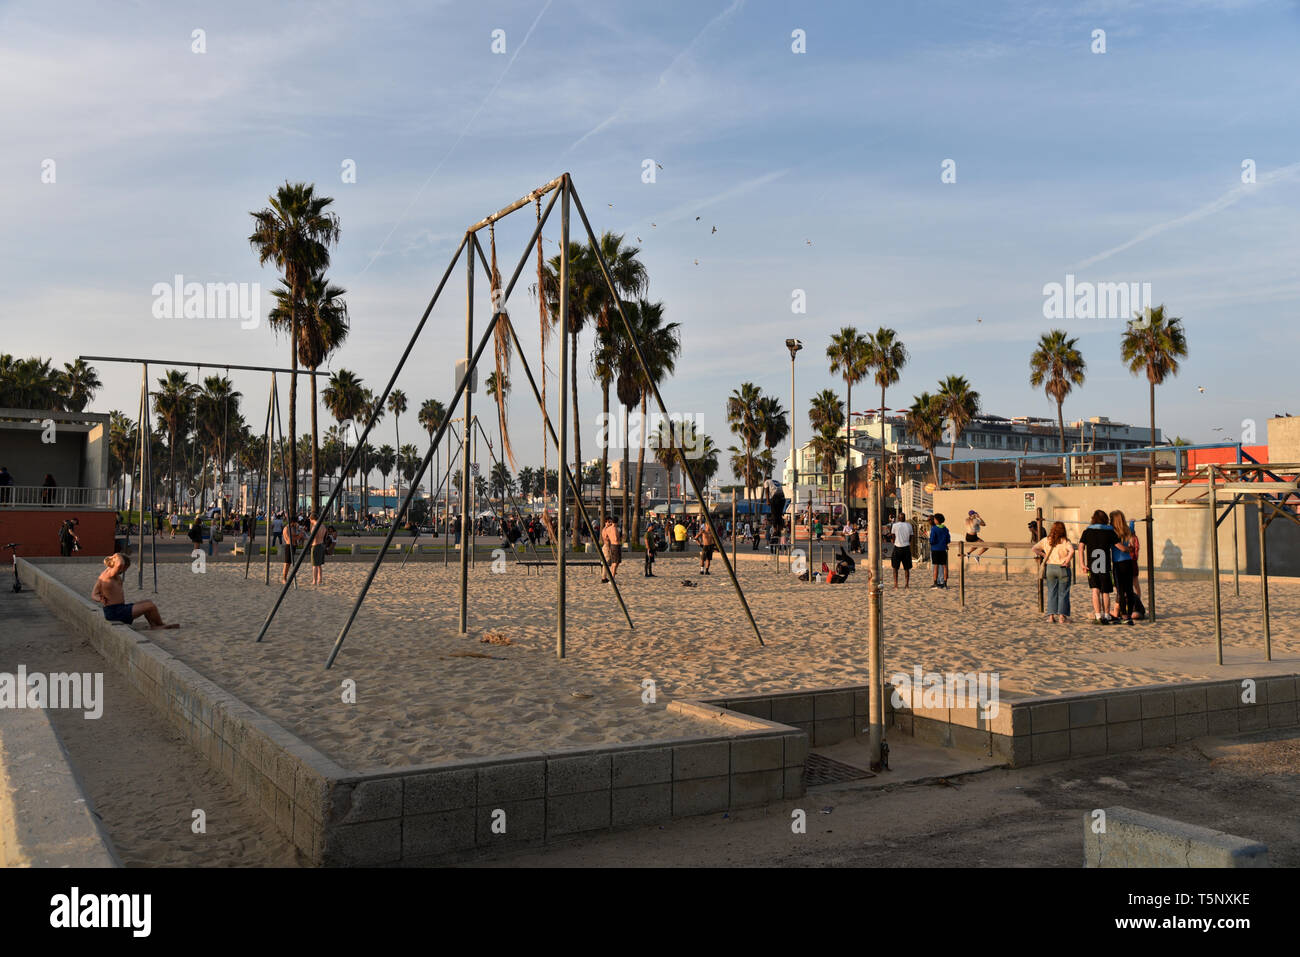 LOS ANGELES, CA/USA  - November 17, 2018: Gymnastics equipment at the world famous Muscle Beach in Venice California - Stock Image